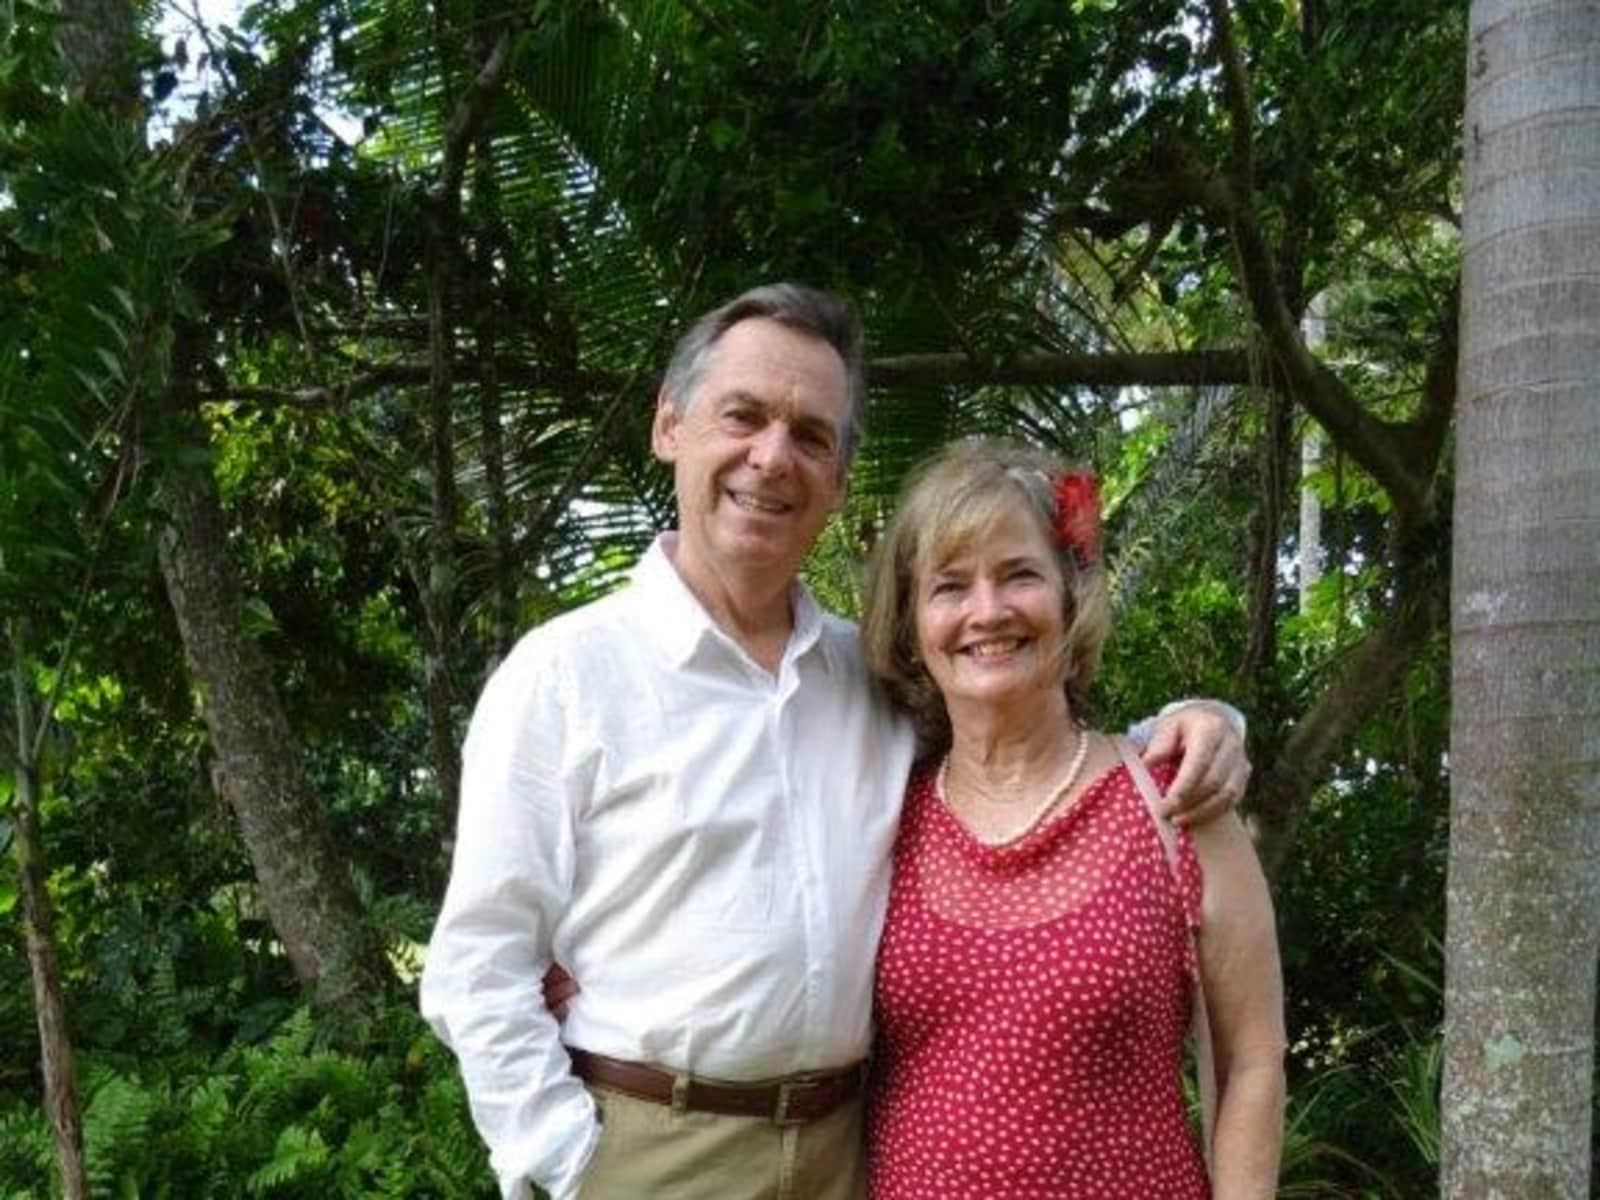 Marlene and geoff & Geoff from Brisbane, Queensland, Australia